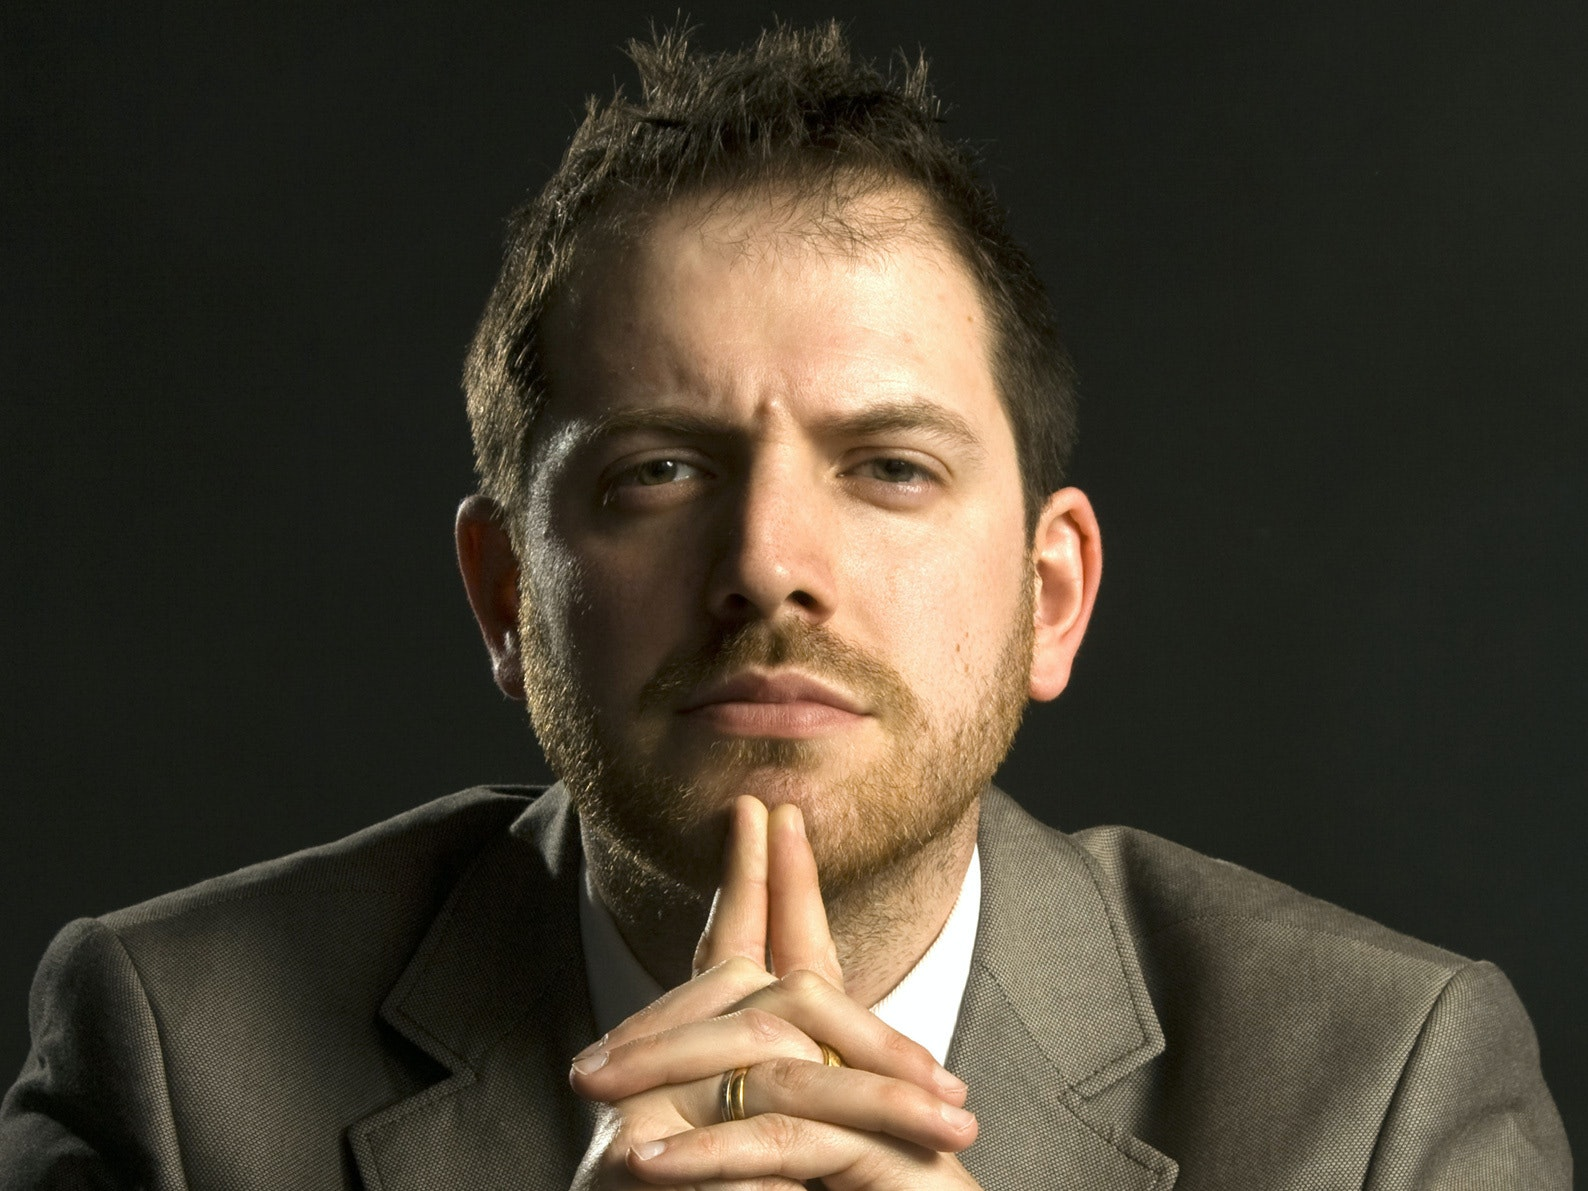 Joe Abercrombie Writes Fantasy Books, Thinks Gandalf Should Worry About Money